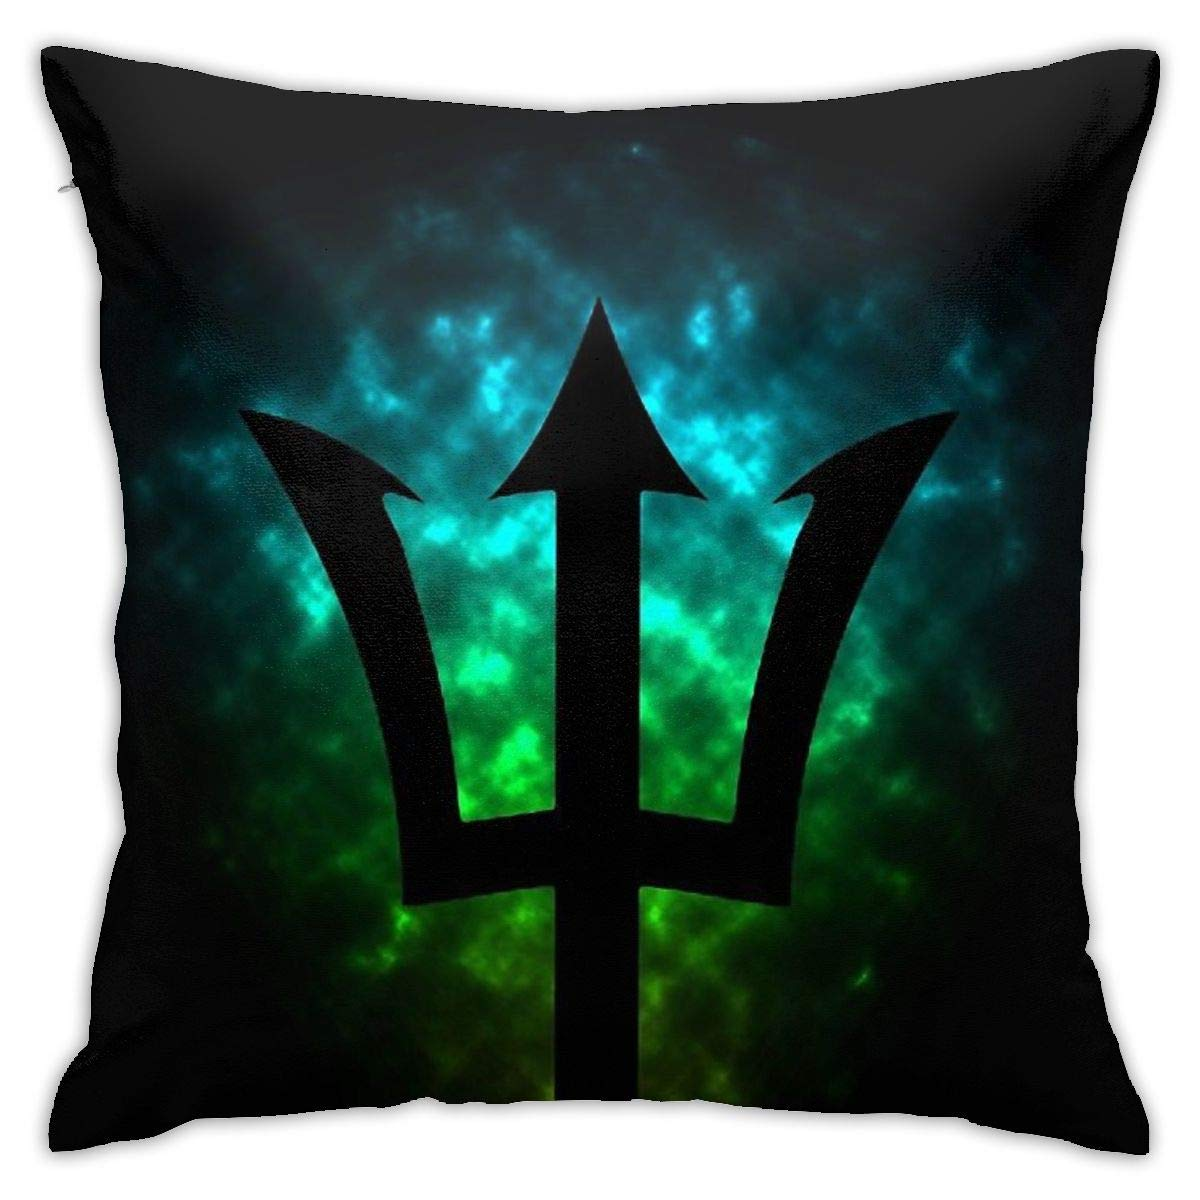 Mabel Trident Poseidon Percy Jackson Square(45cmx45cm) Pillow Home Bed Room Interior Decoration